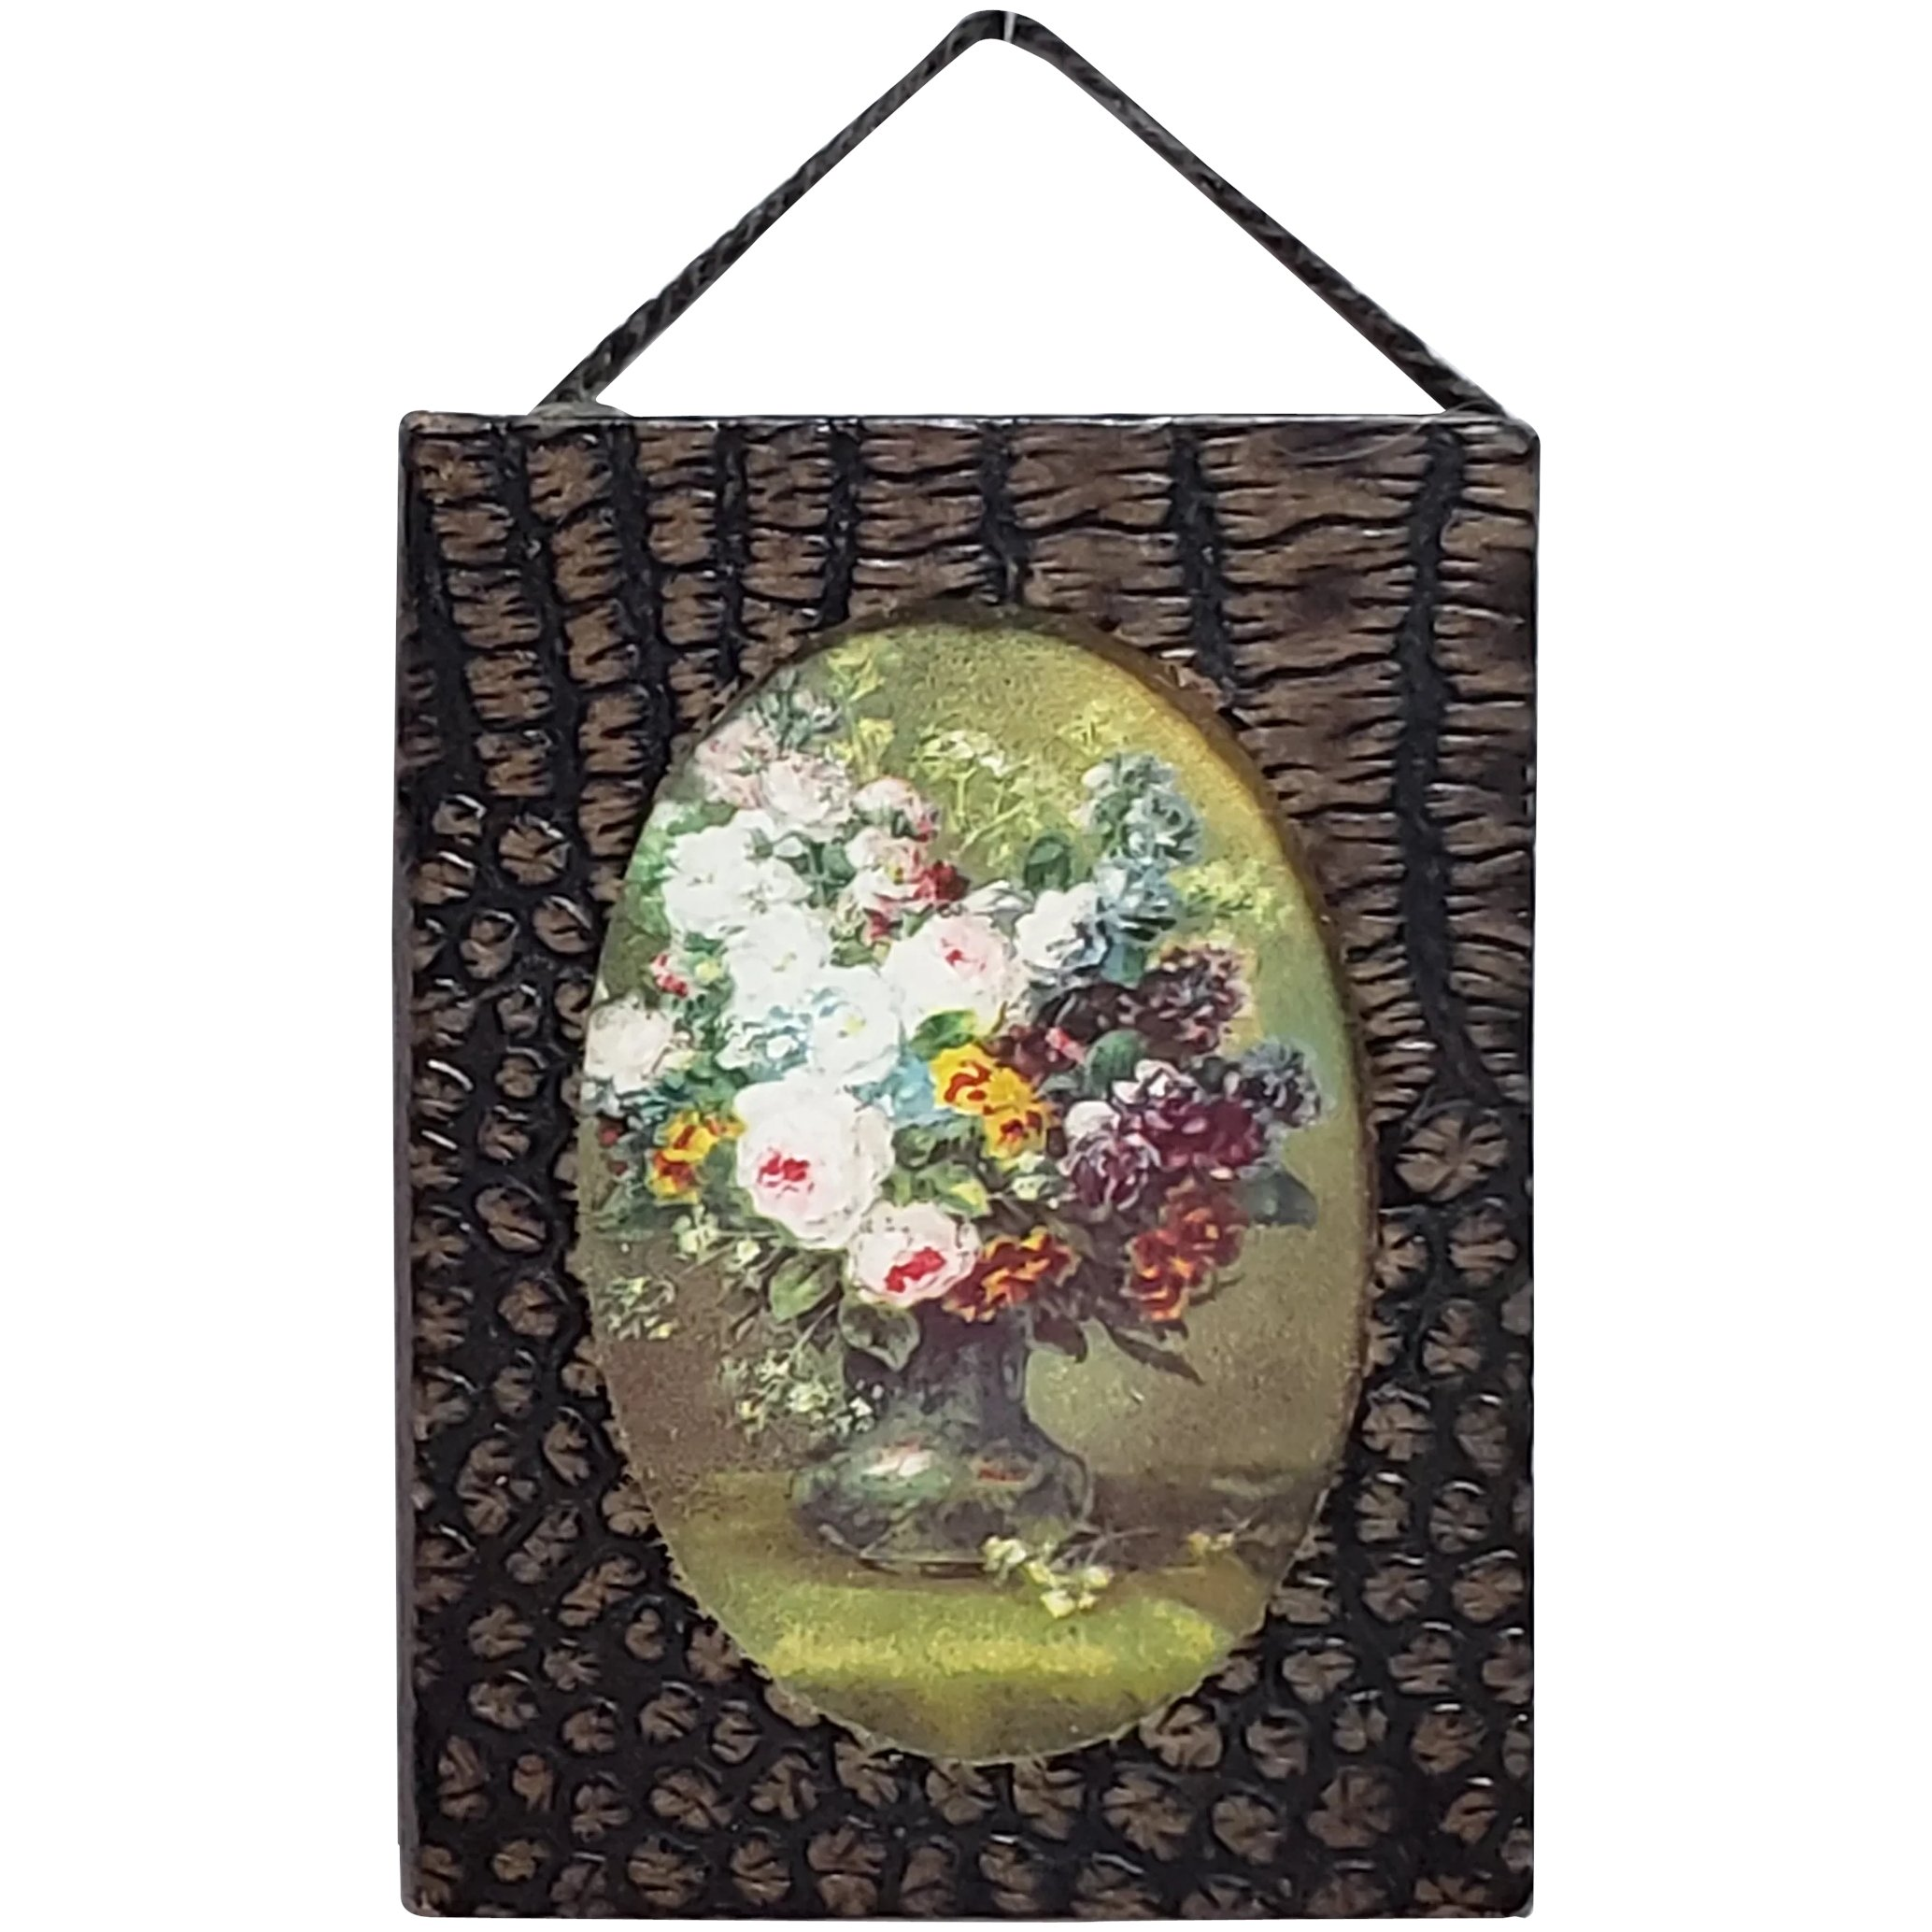 Oval Floral Still Life Miniature Dollhouse Picture